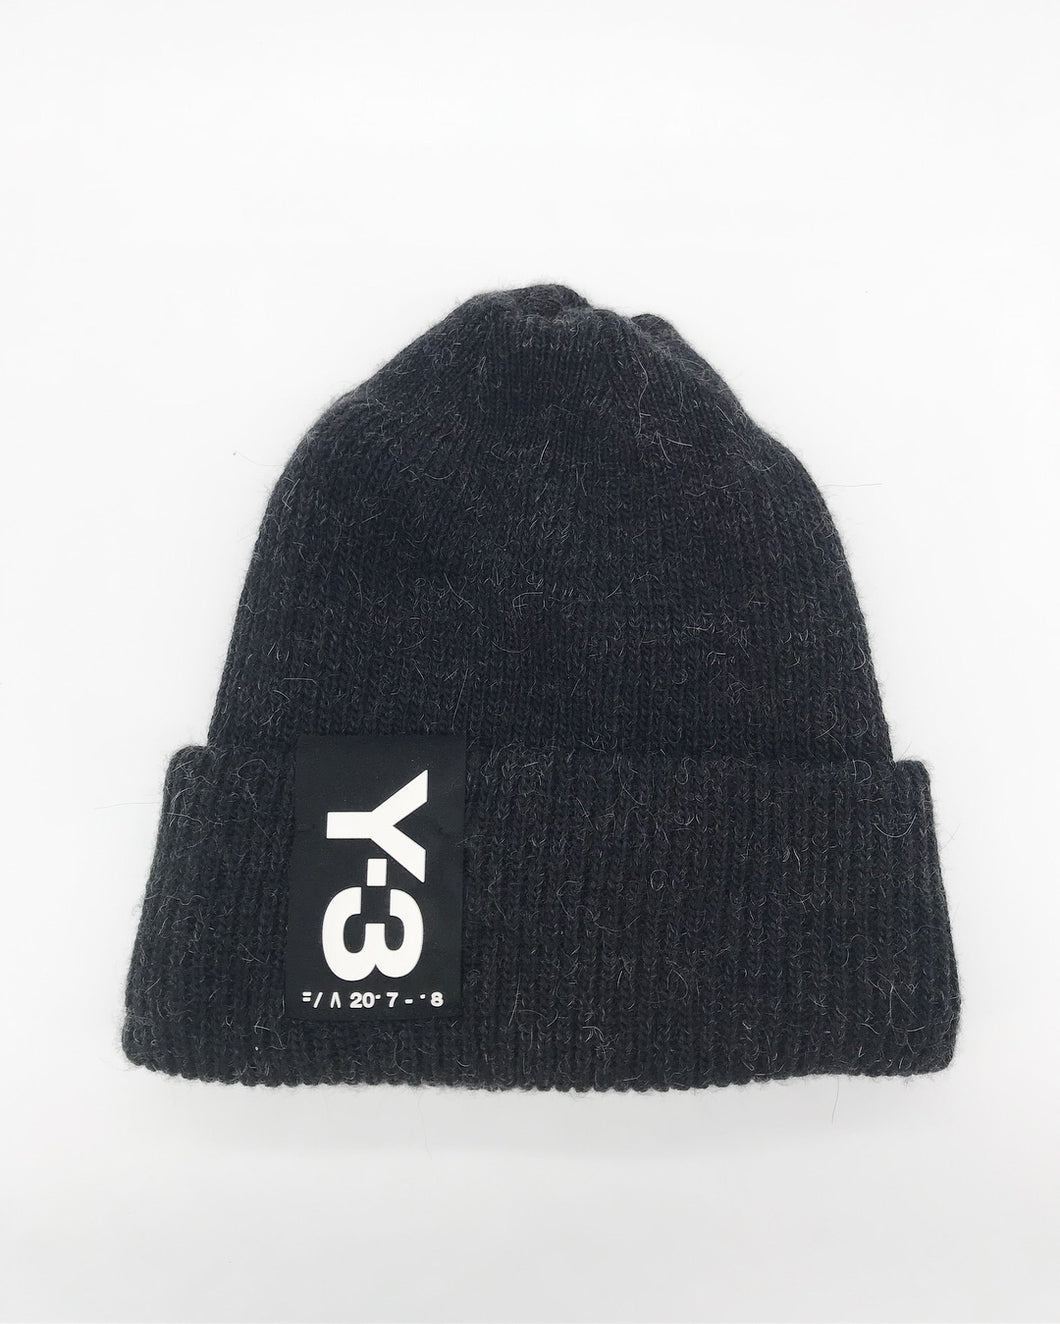 Y-3 BADGE BEANIE (BLACK)